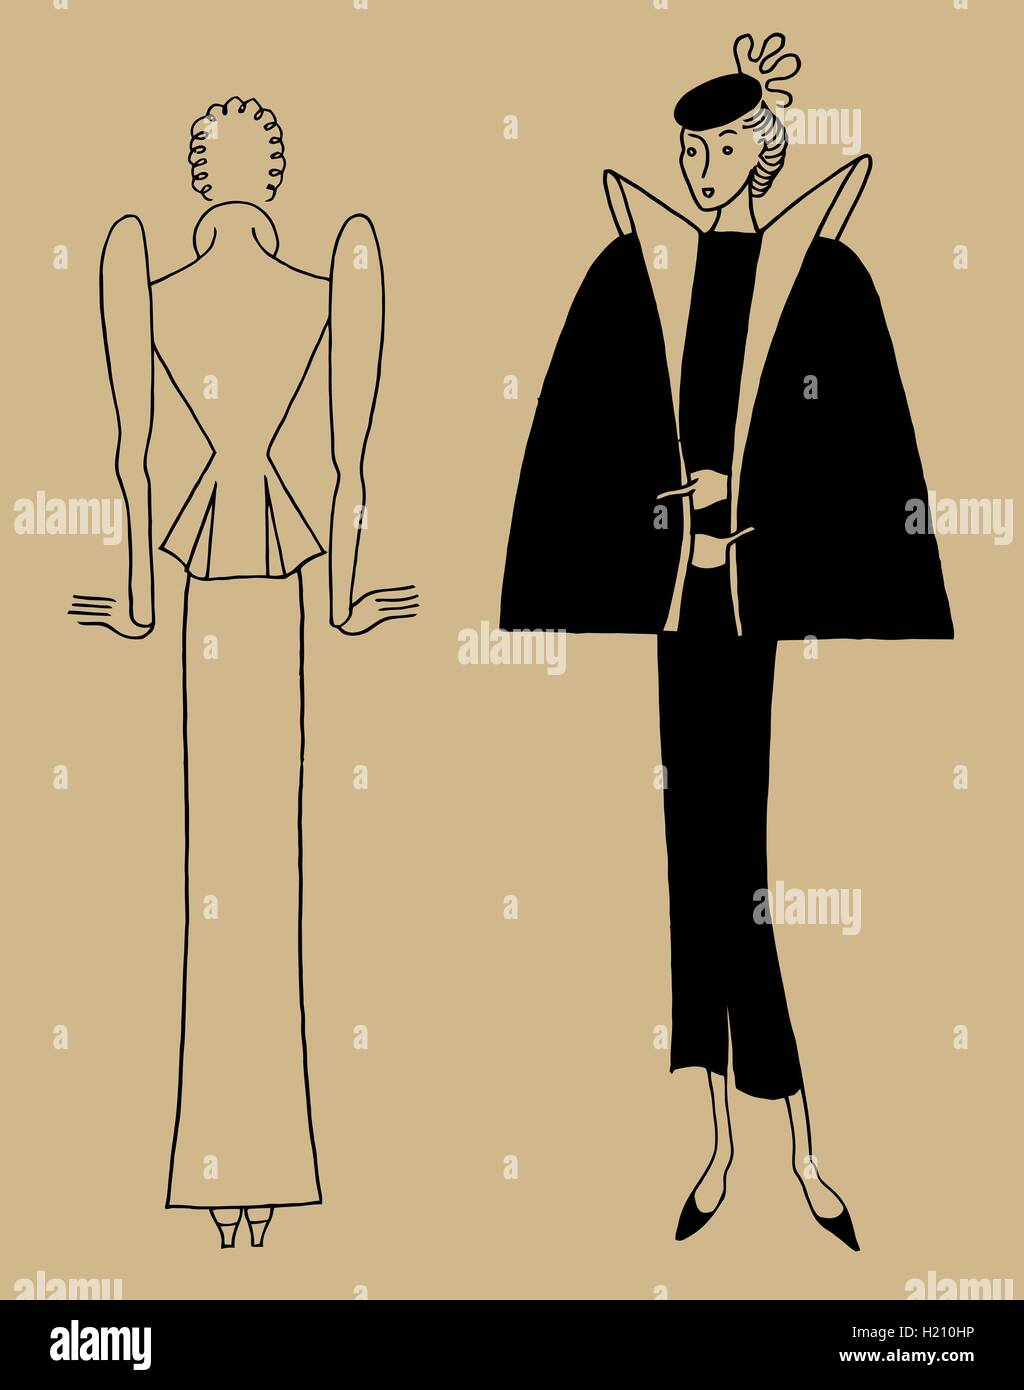 Vintage Hand Drawn. Women's clothing 30's. Retro Illustration in ancient engraving style. - Stock Image